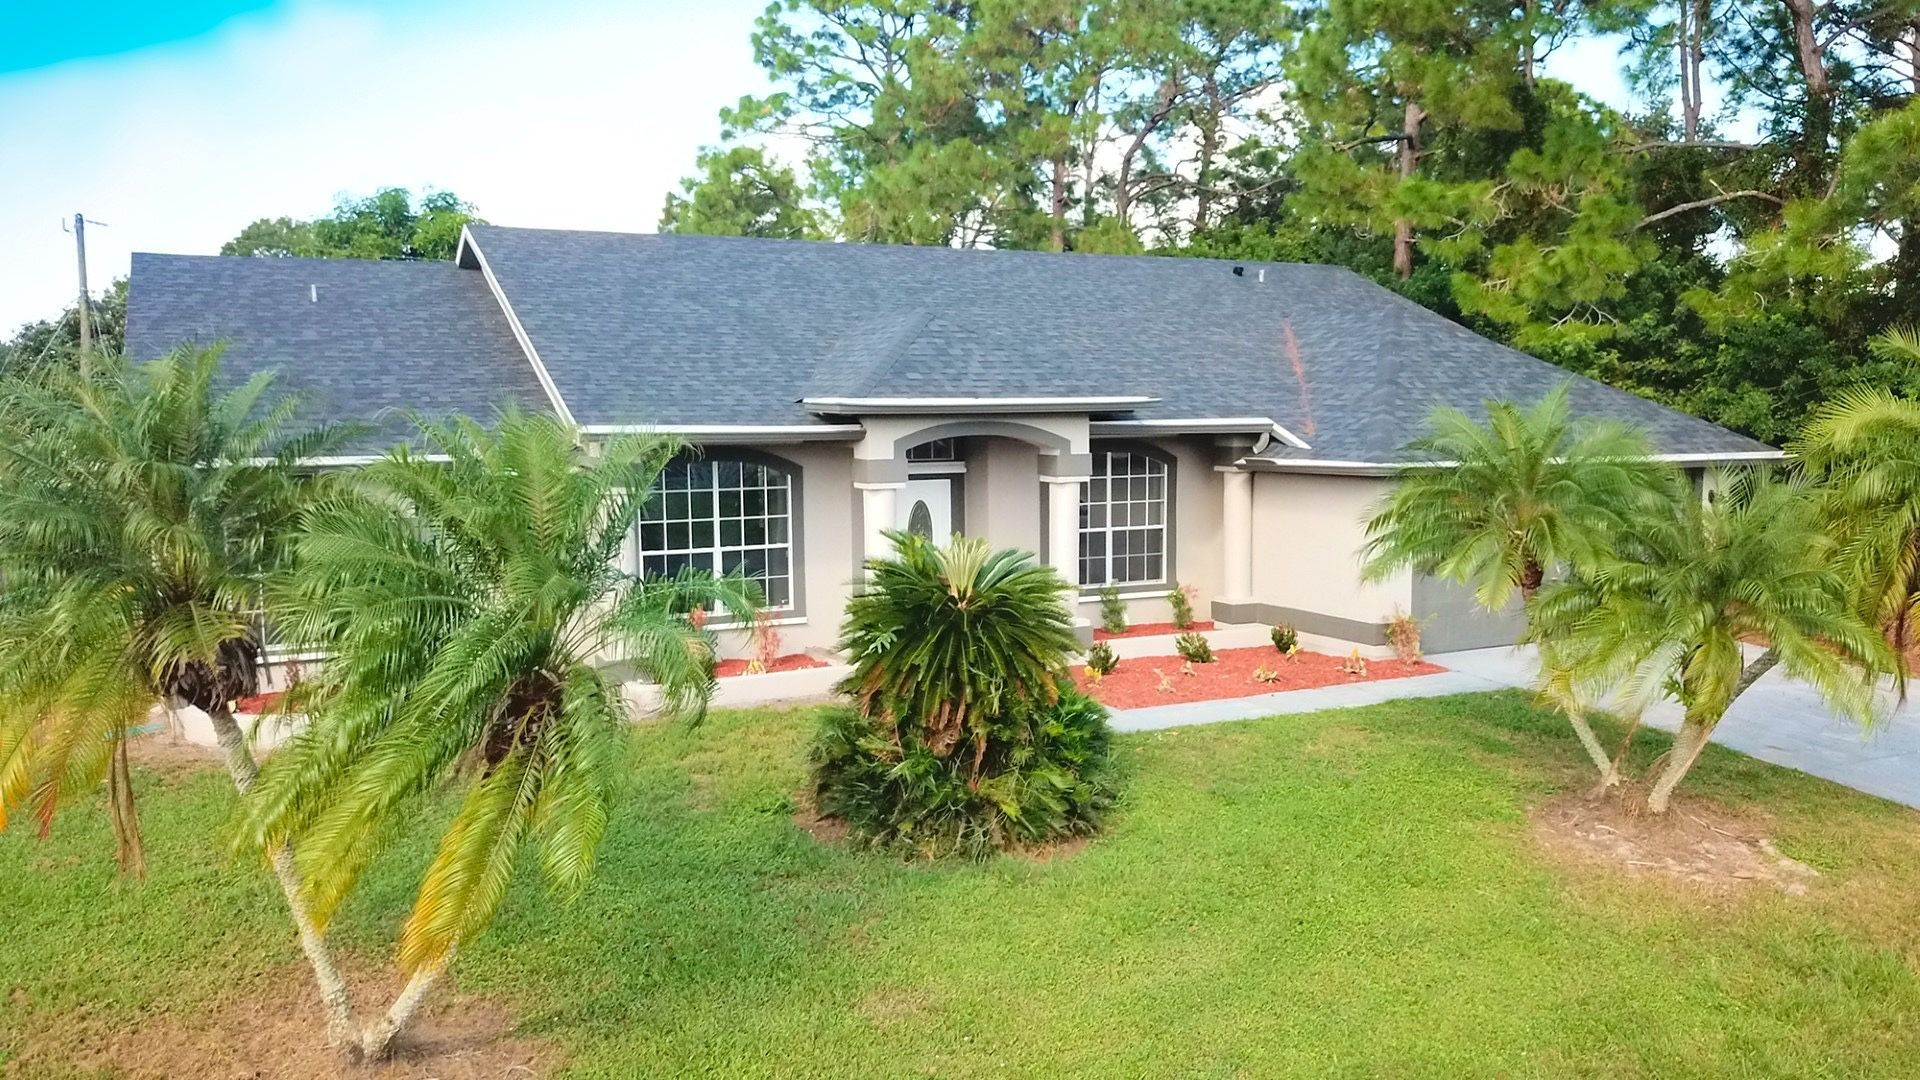 785 Pampas St Nw Brand New Roof 3 Bed 2 Bath 1944 Sq Ft Under Air Move In Ready Home Call Lynn Now 321 427 6788 We Are Ju In 2020 Pampas Burley Outdoor Decor